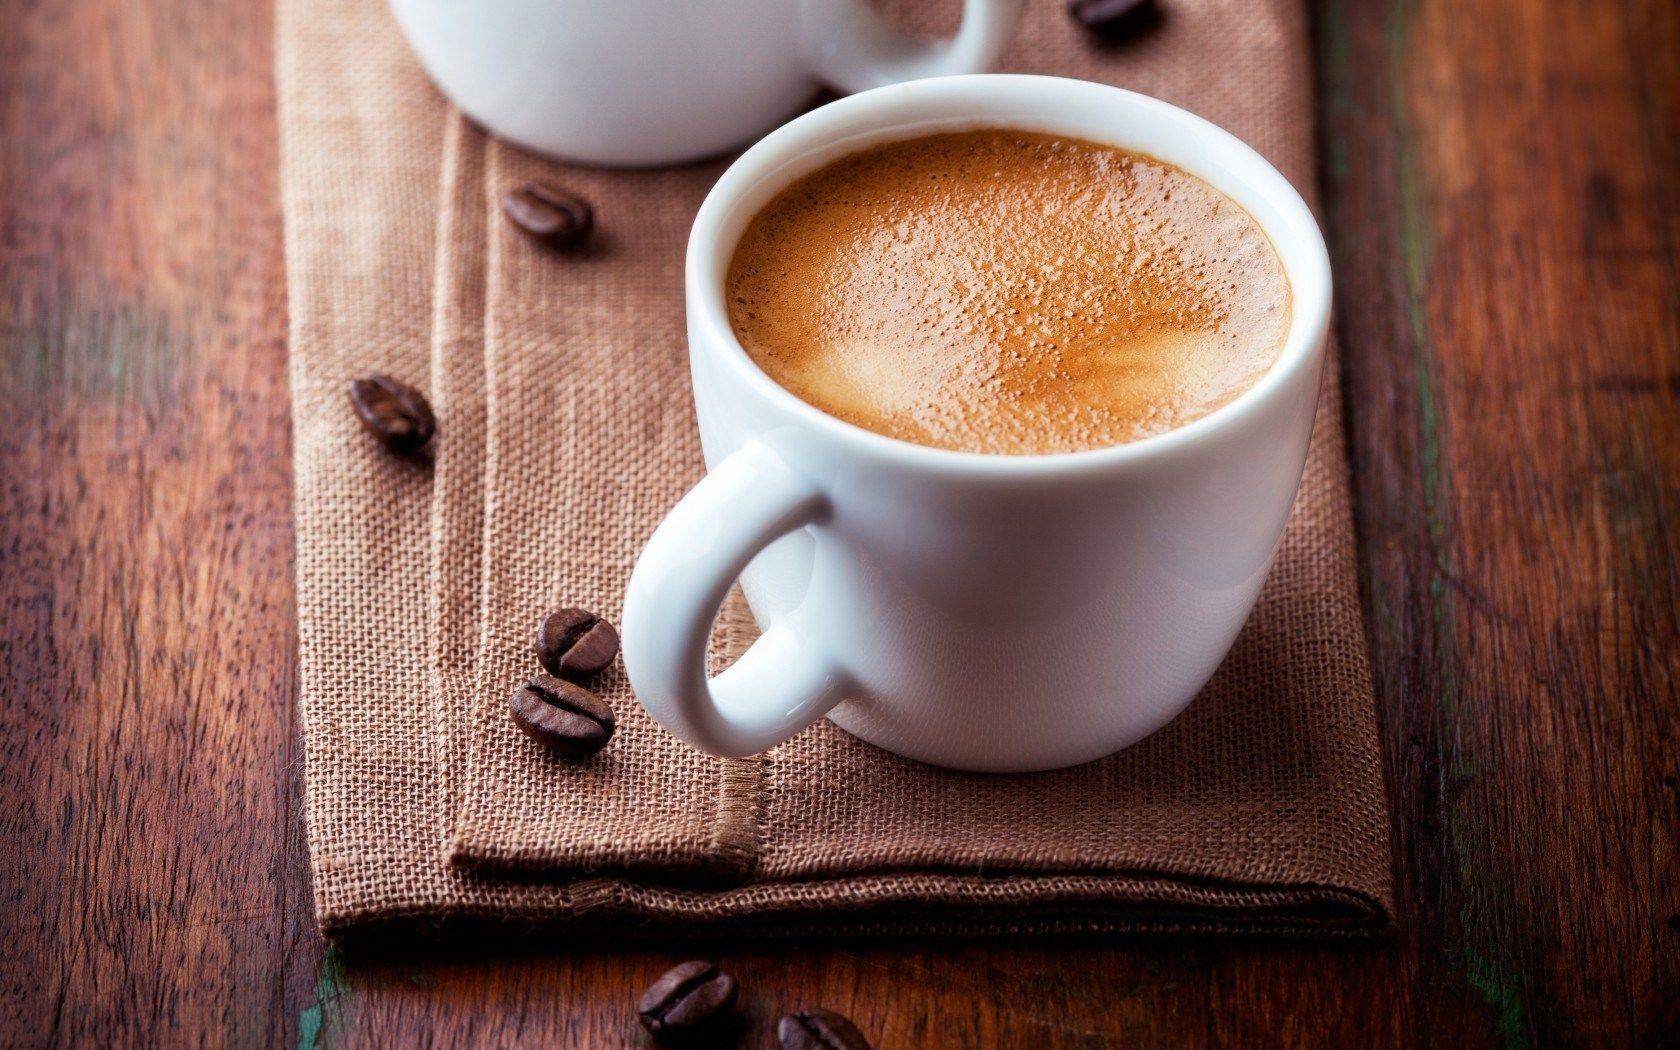 Coffee Cup Beans Fabric HD Wallpaper - ZoomWalls